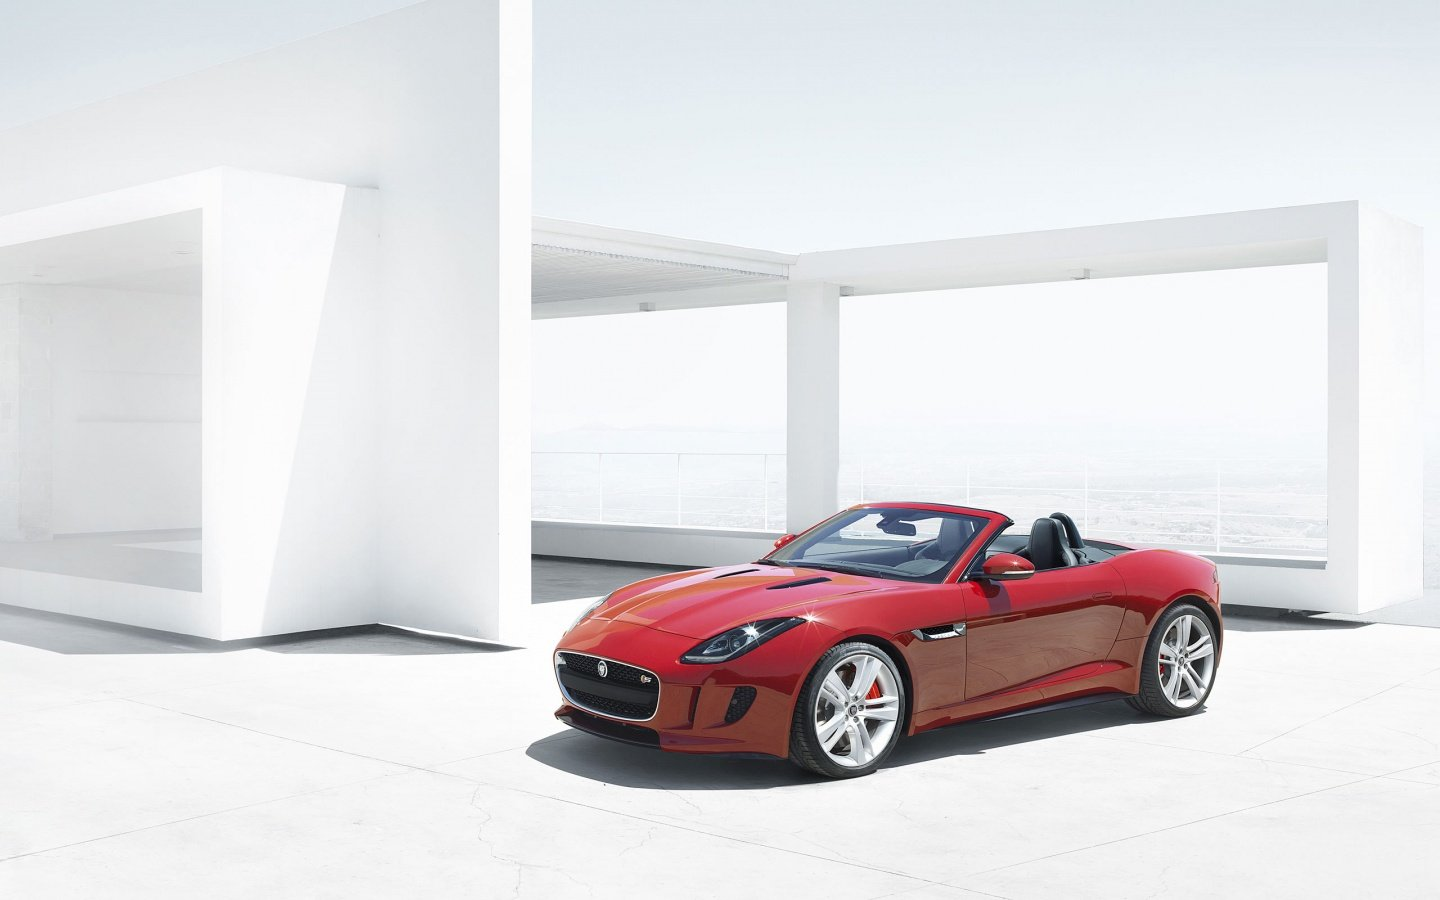 2014 Jaguar F Type Wallpaper HD Car Wallpapers 1440x900